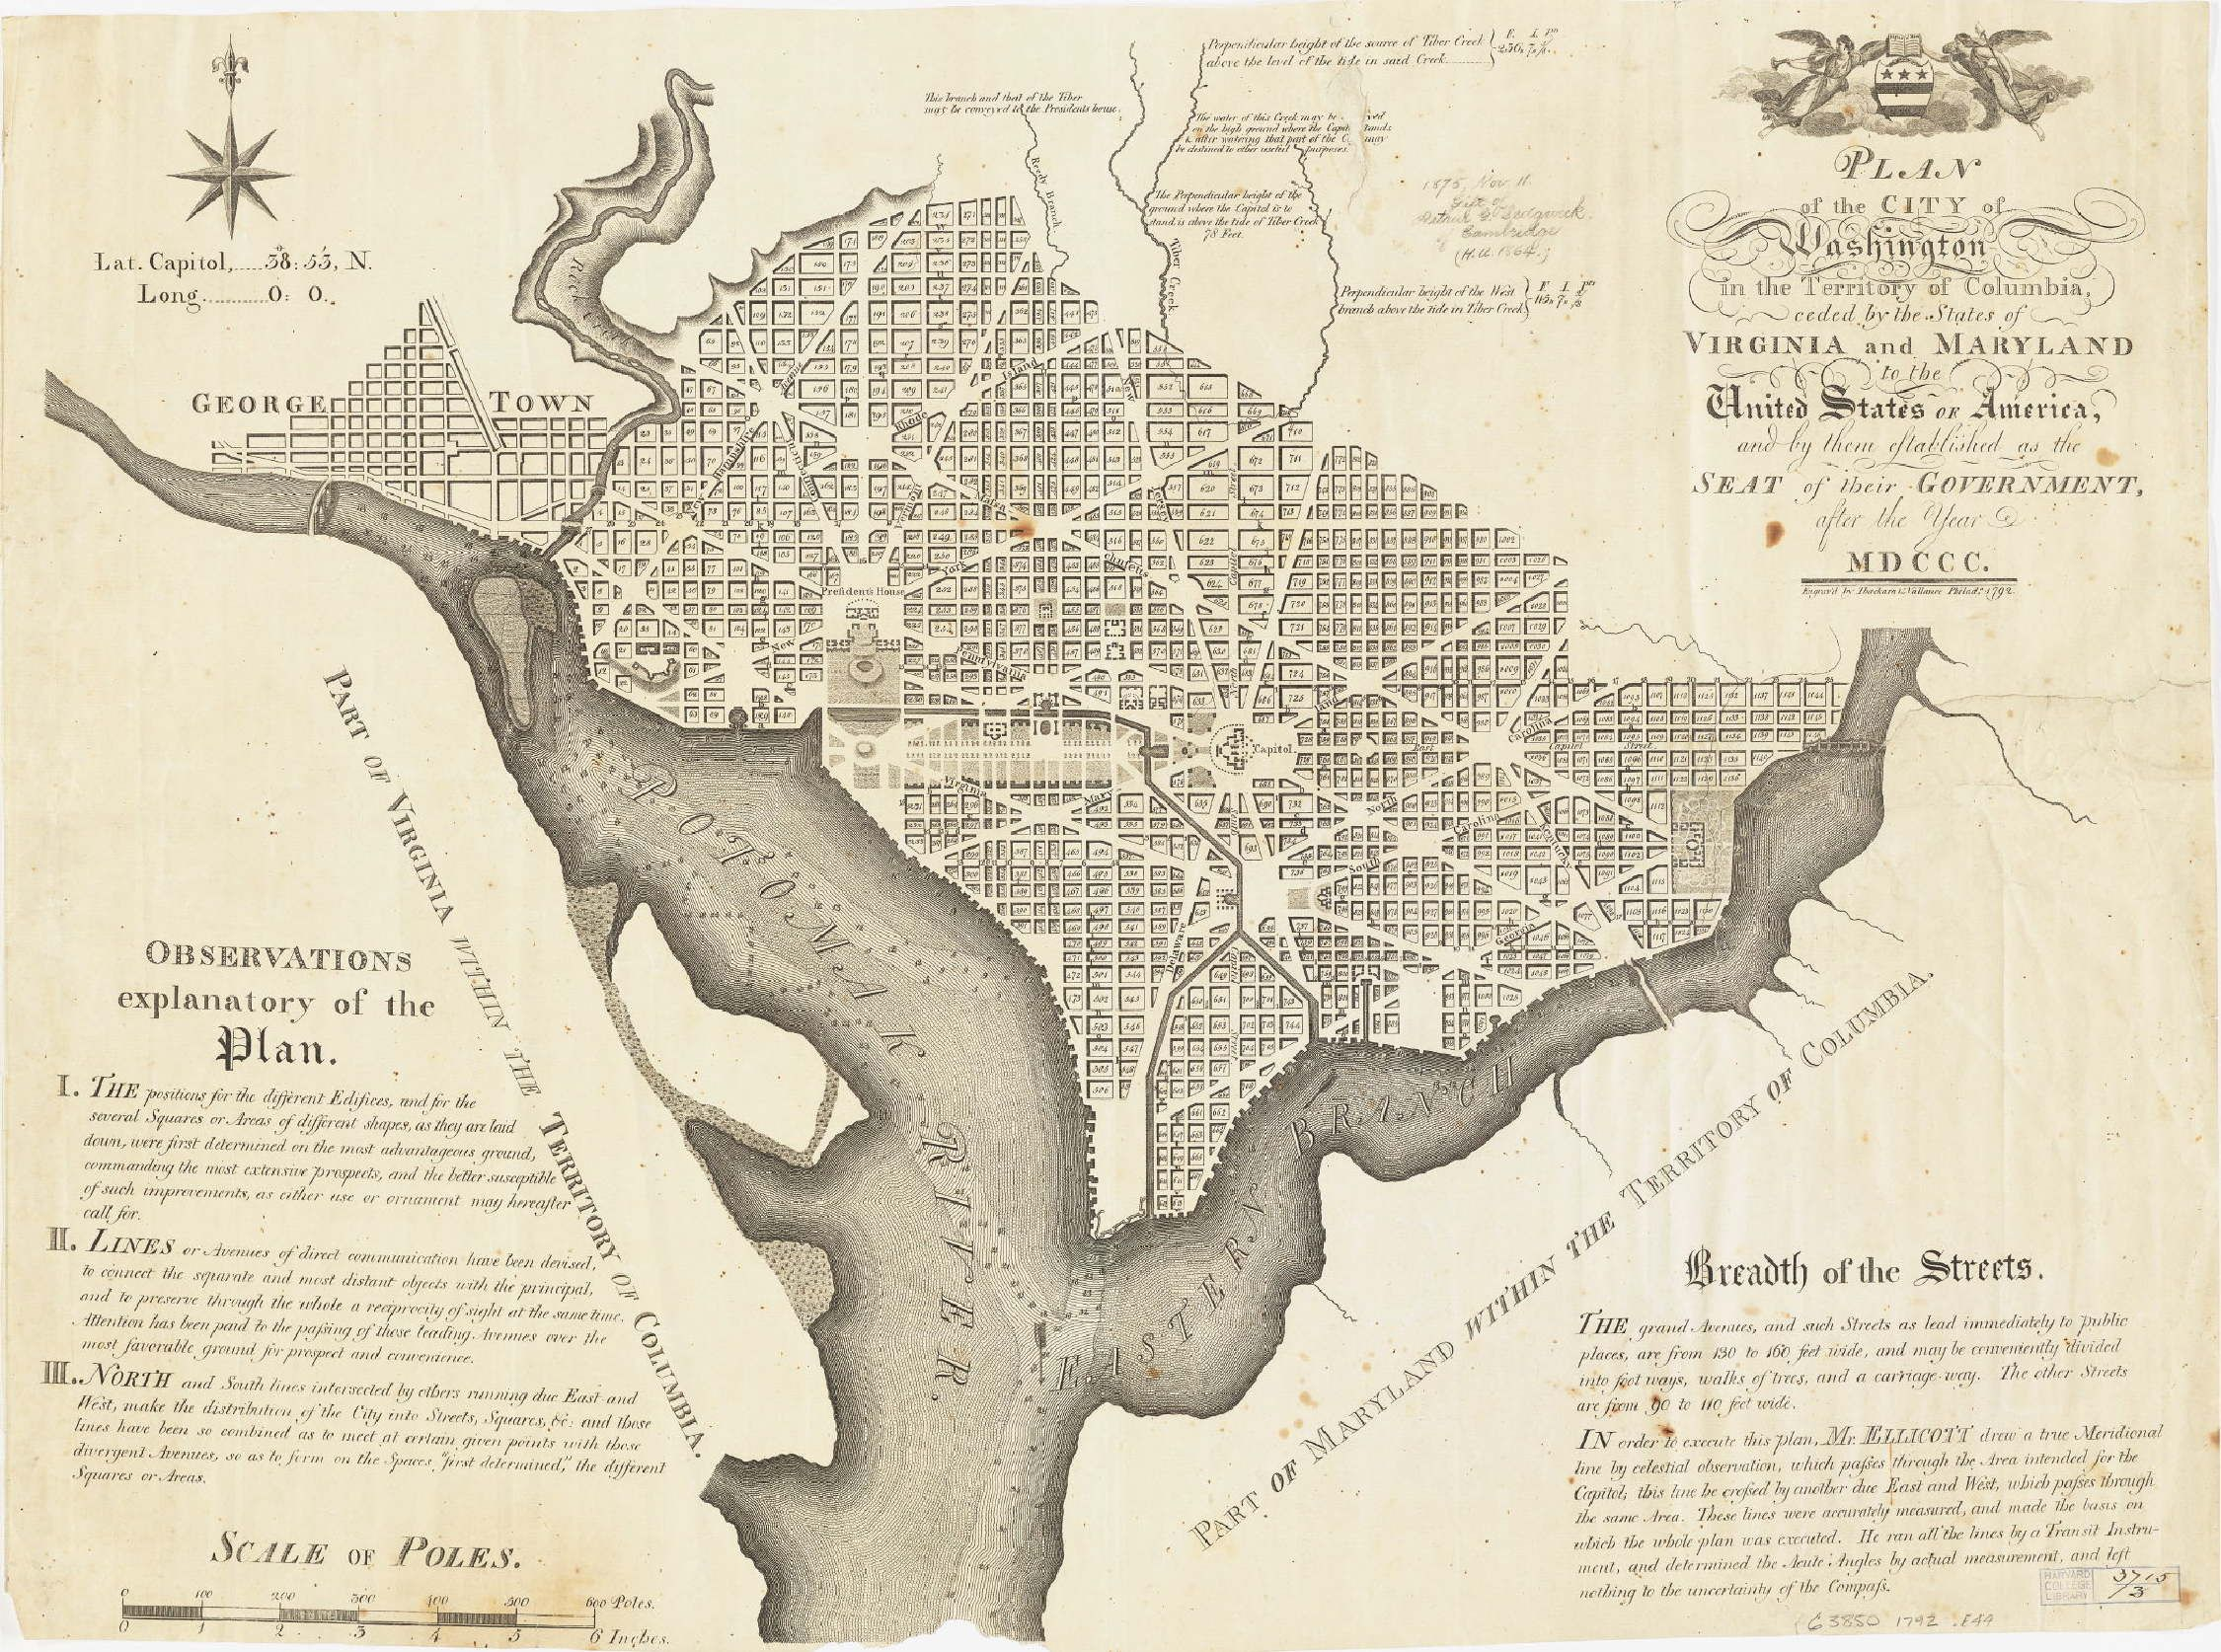 Ellicott S City Plan For The Constitution